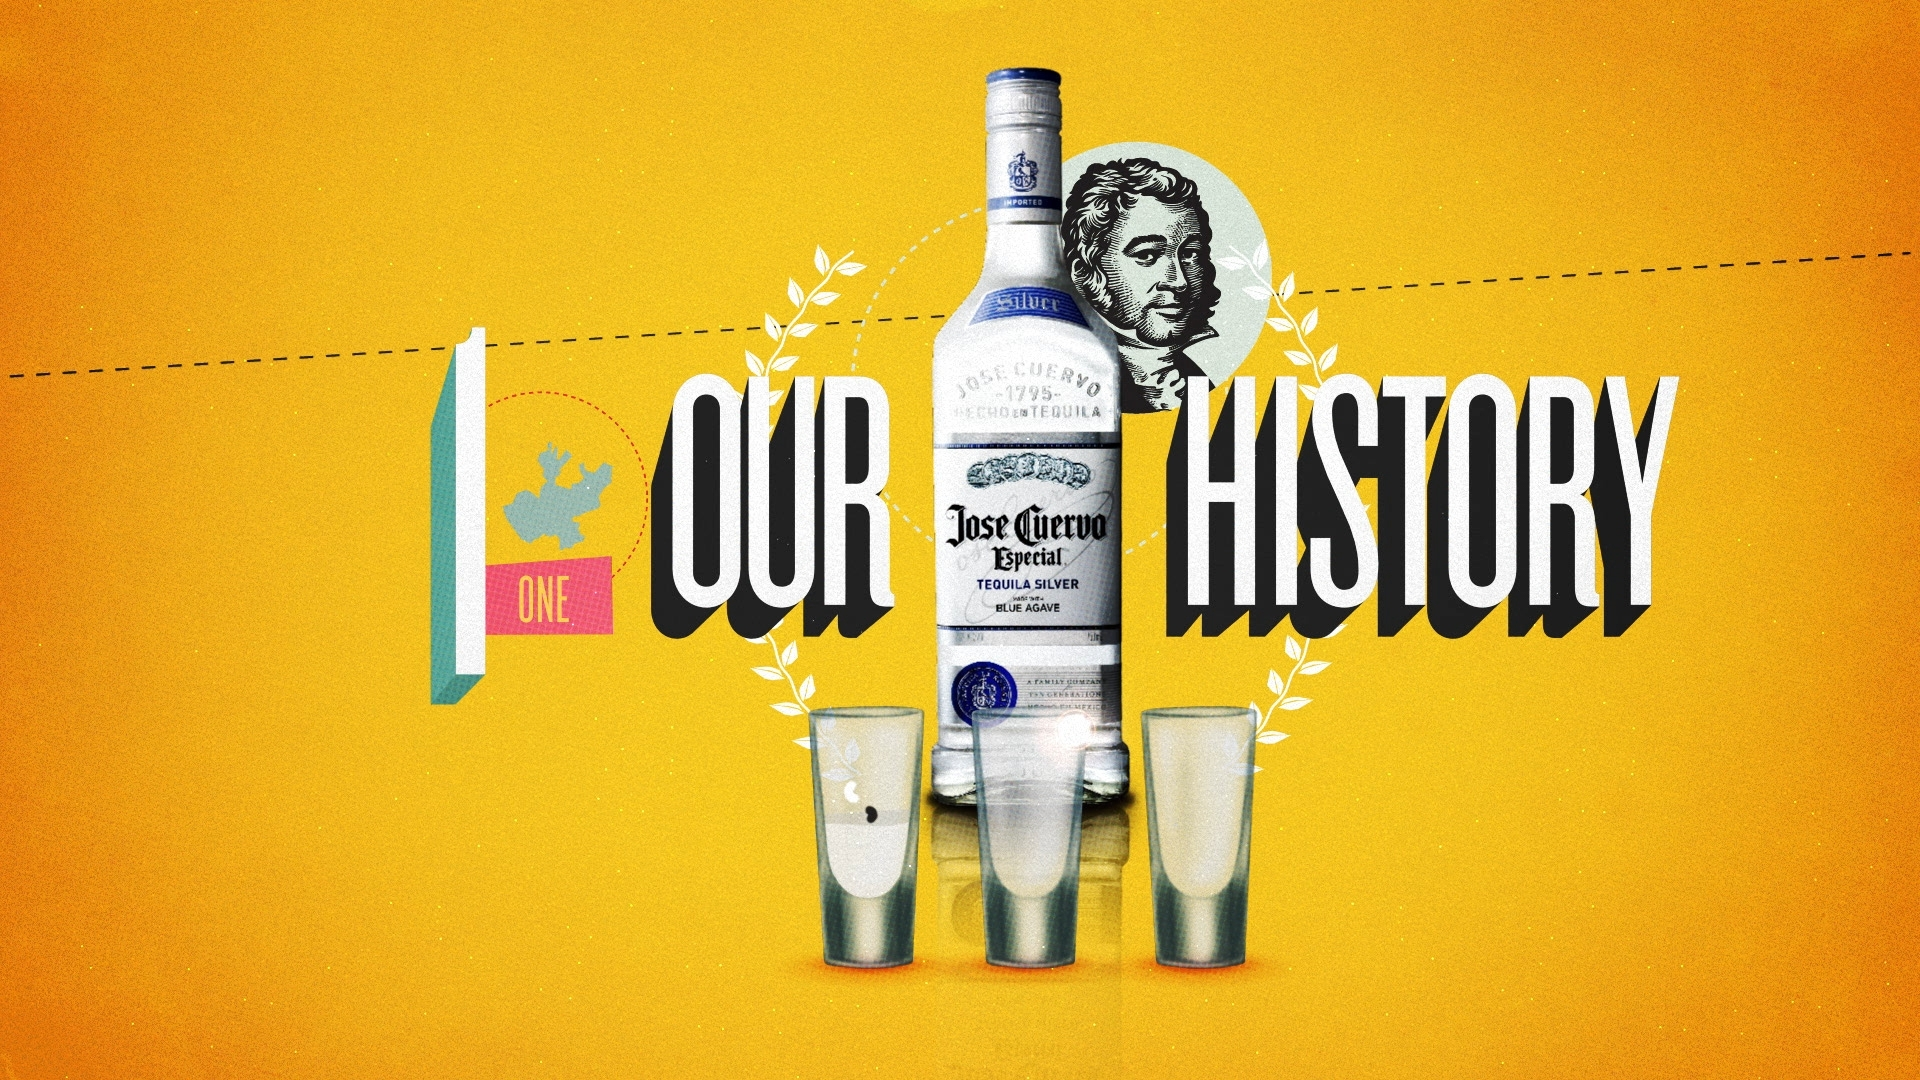 Jose Cuervo 200 Years - Spot